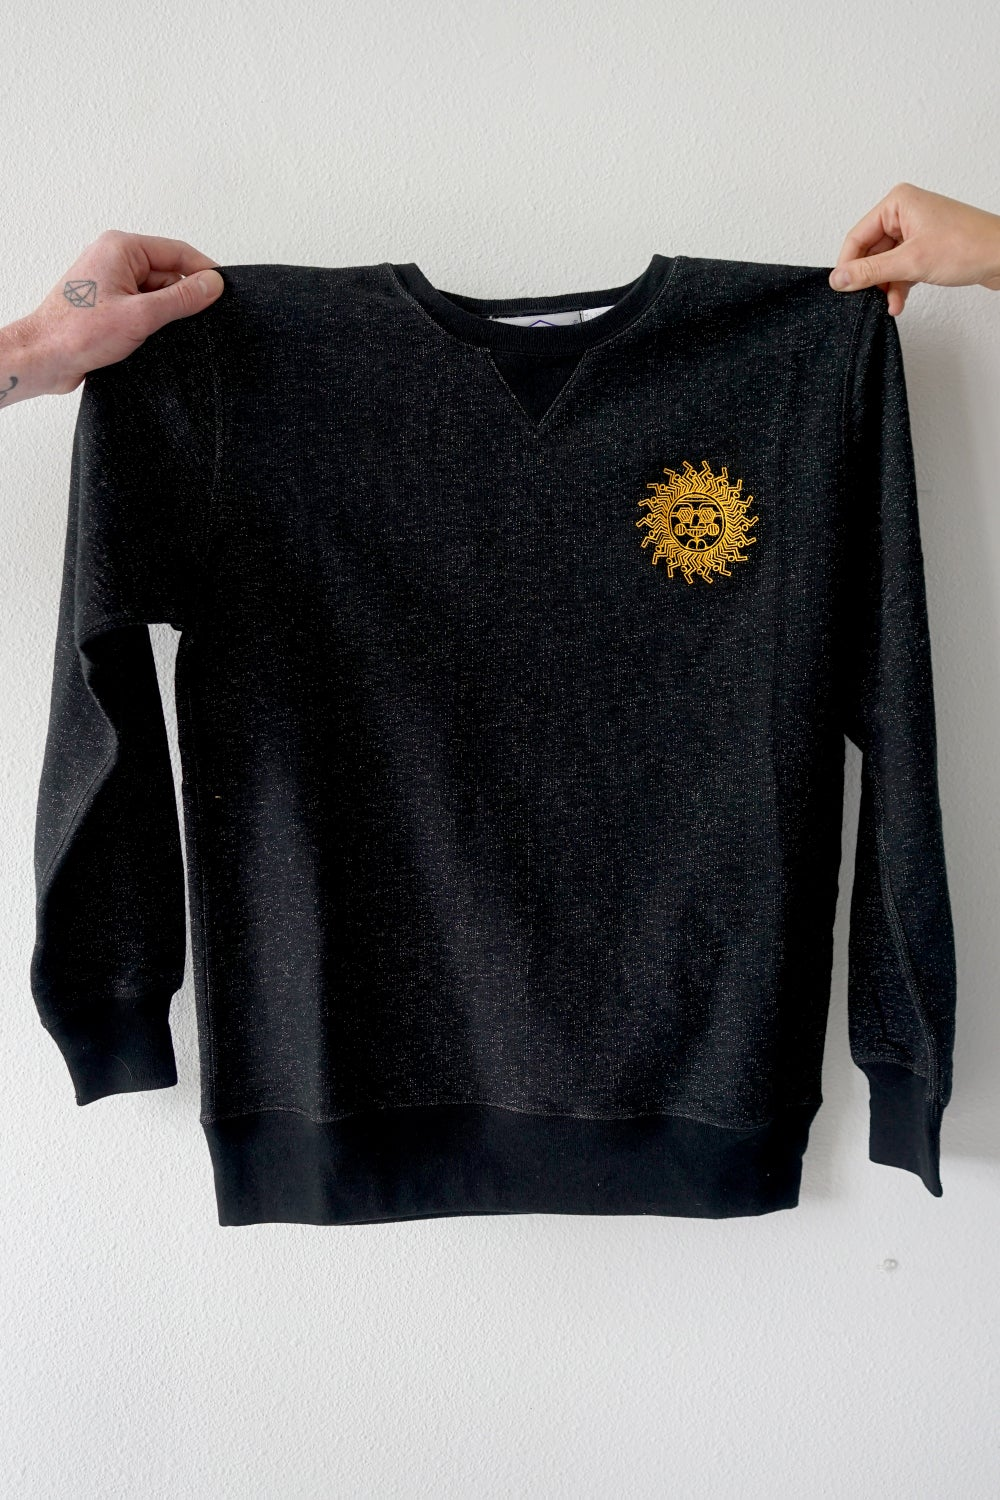 Image of Sun Sweatshirt in Black